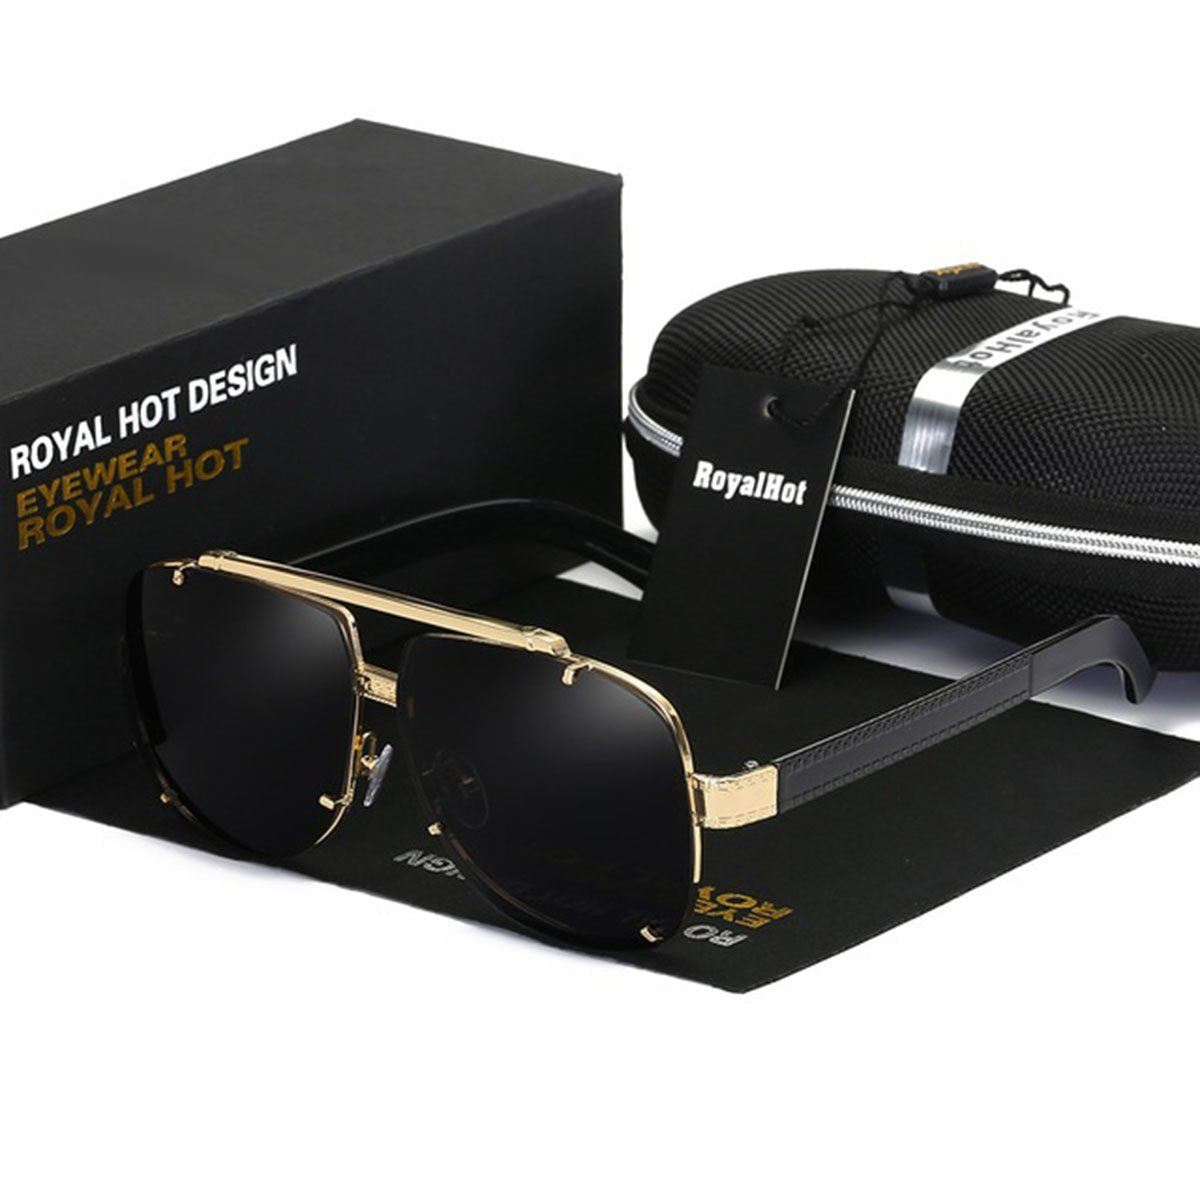 RoyalHot Unisex Polarized Sunglasses